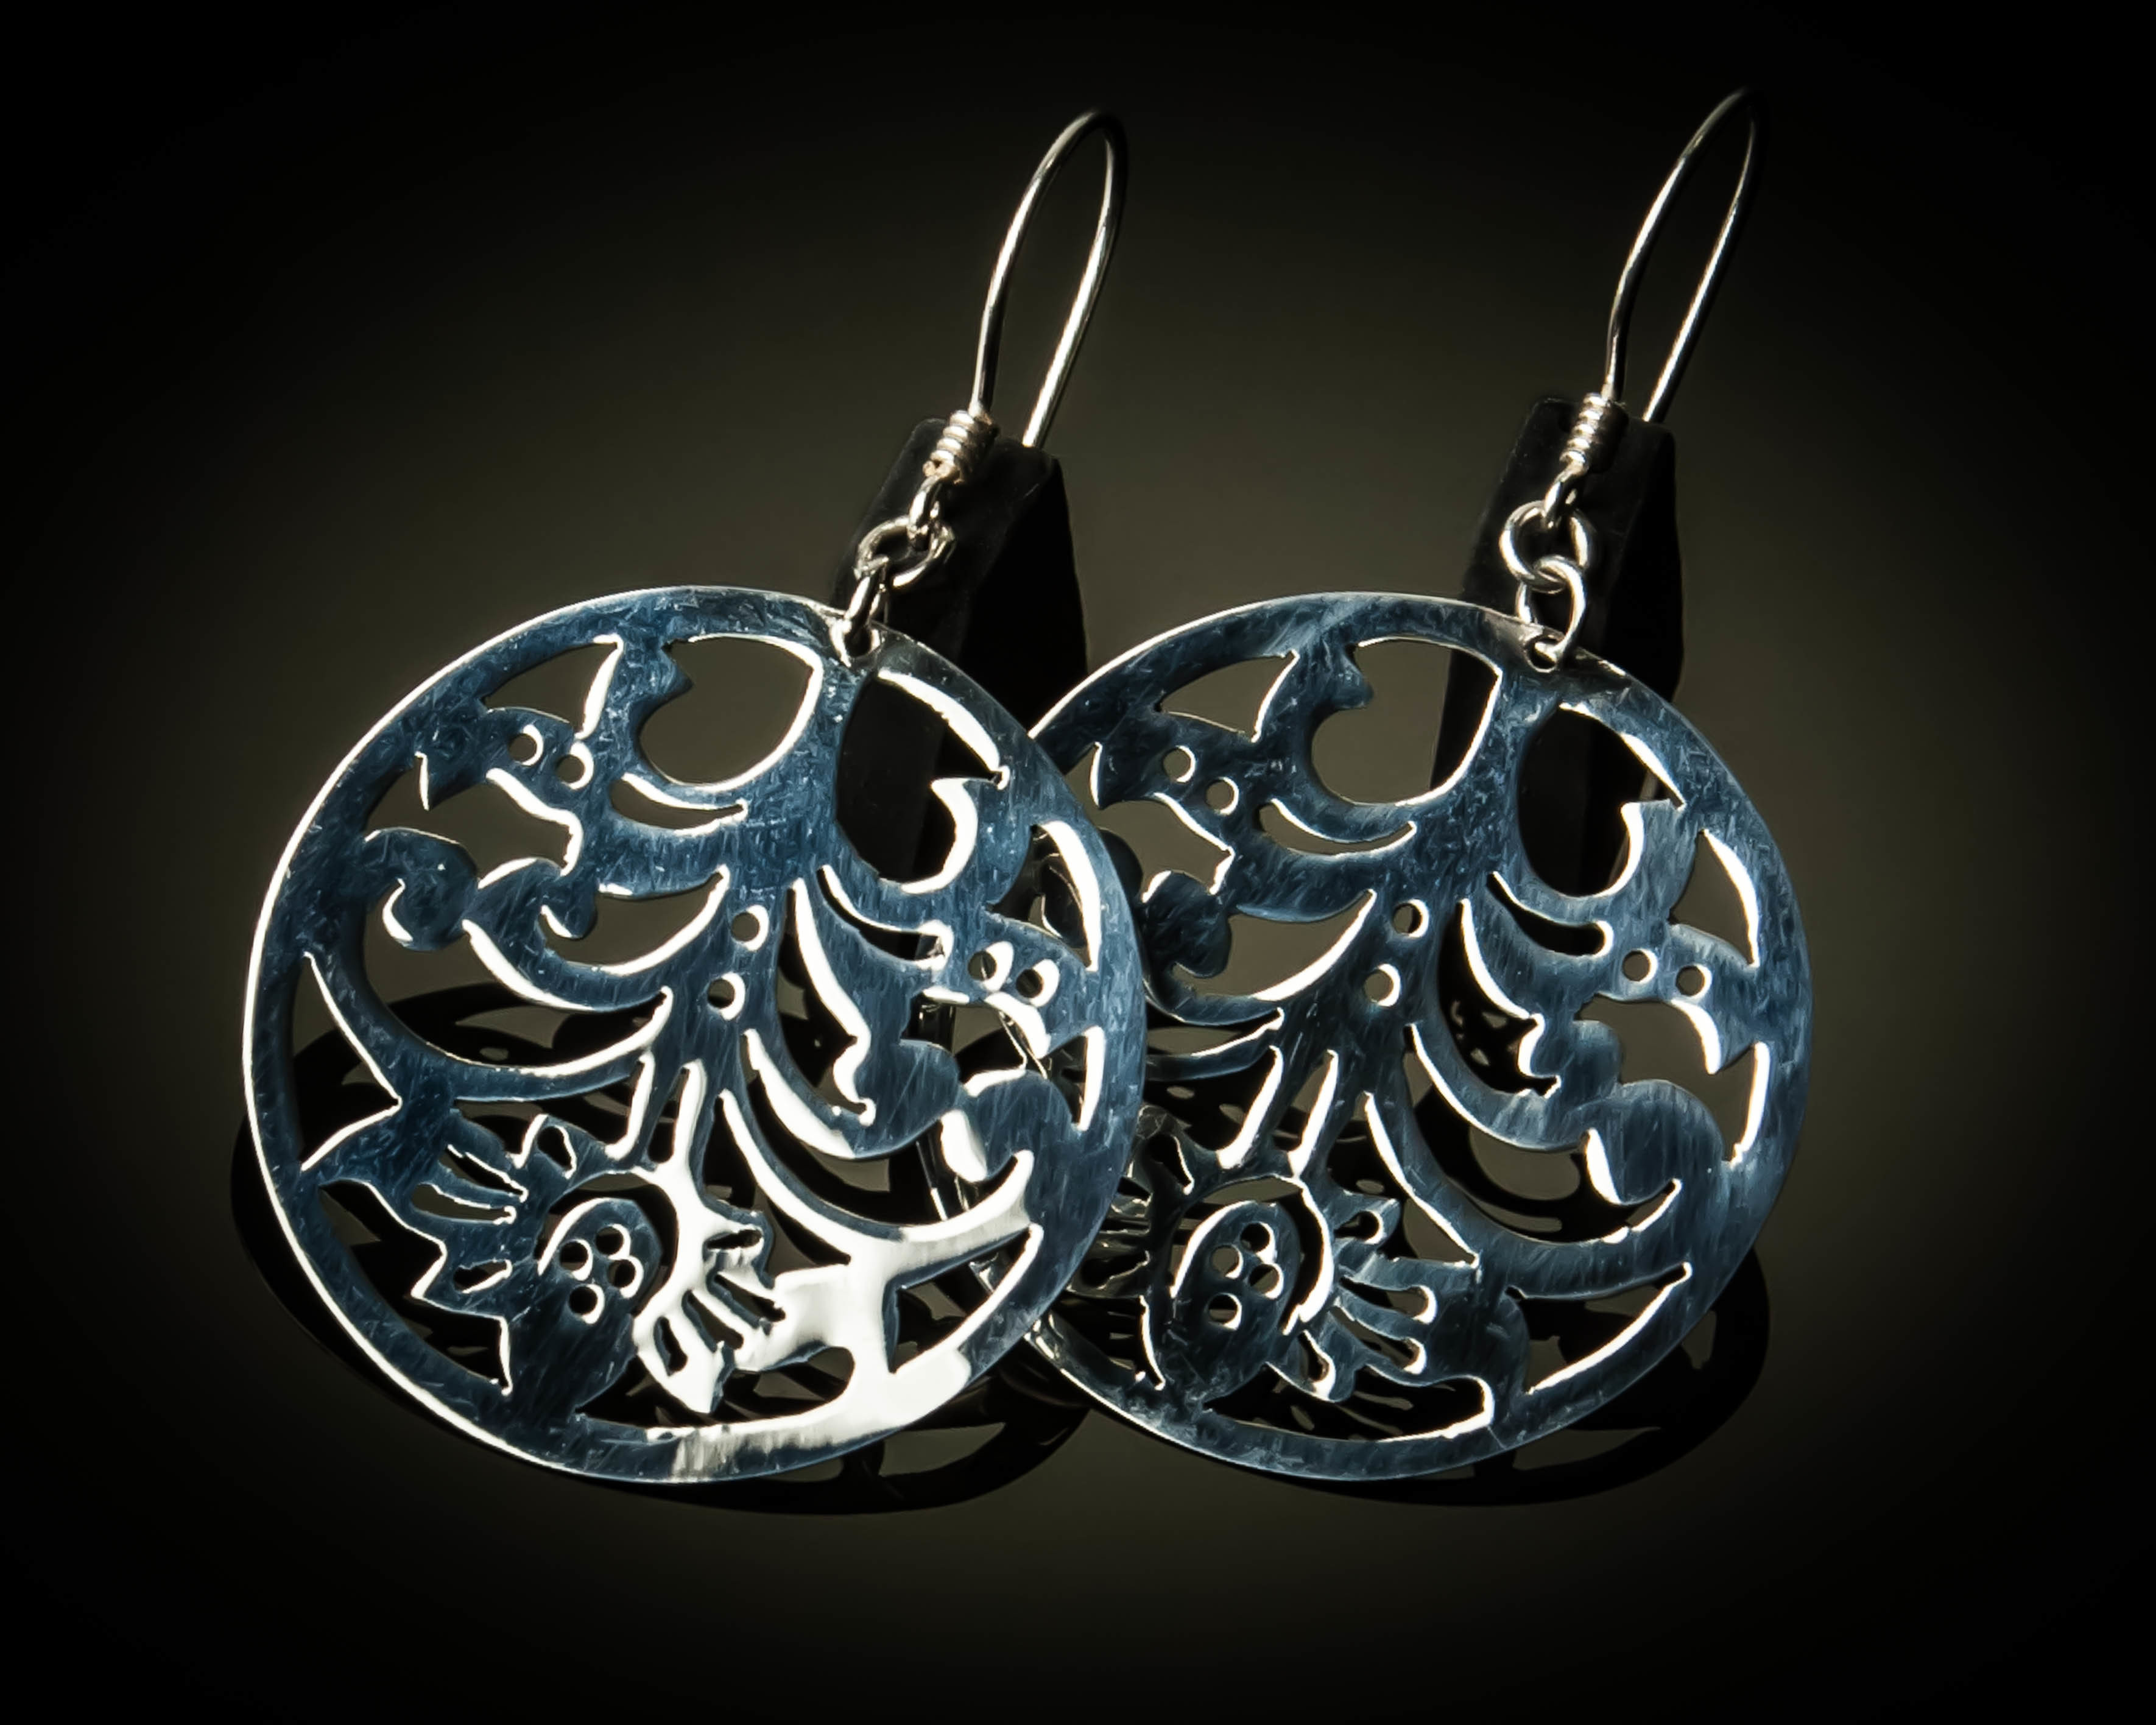 Small Round Sterling Silver Cutout Earrings ER-09069S